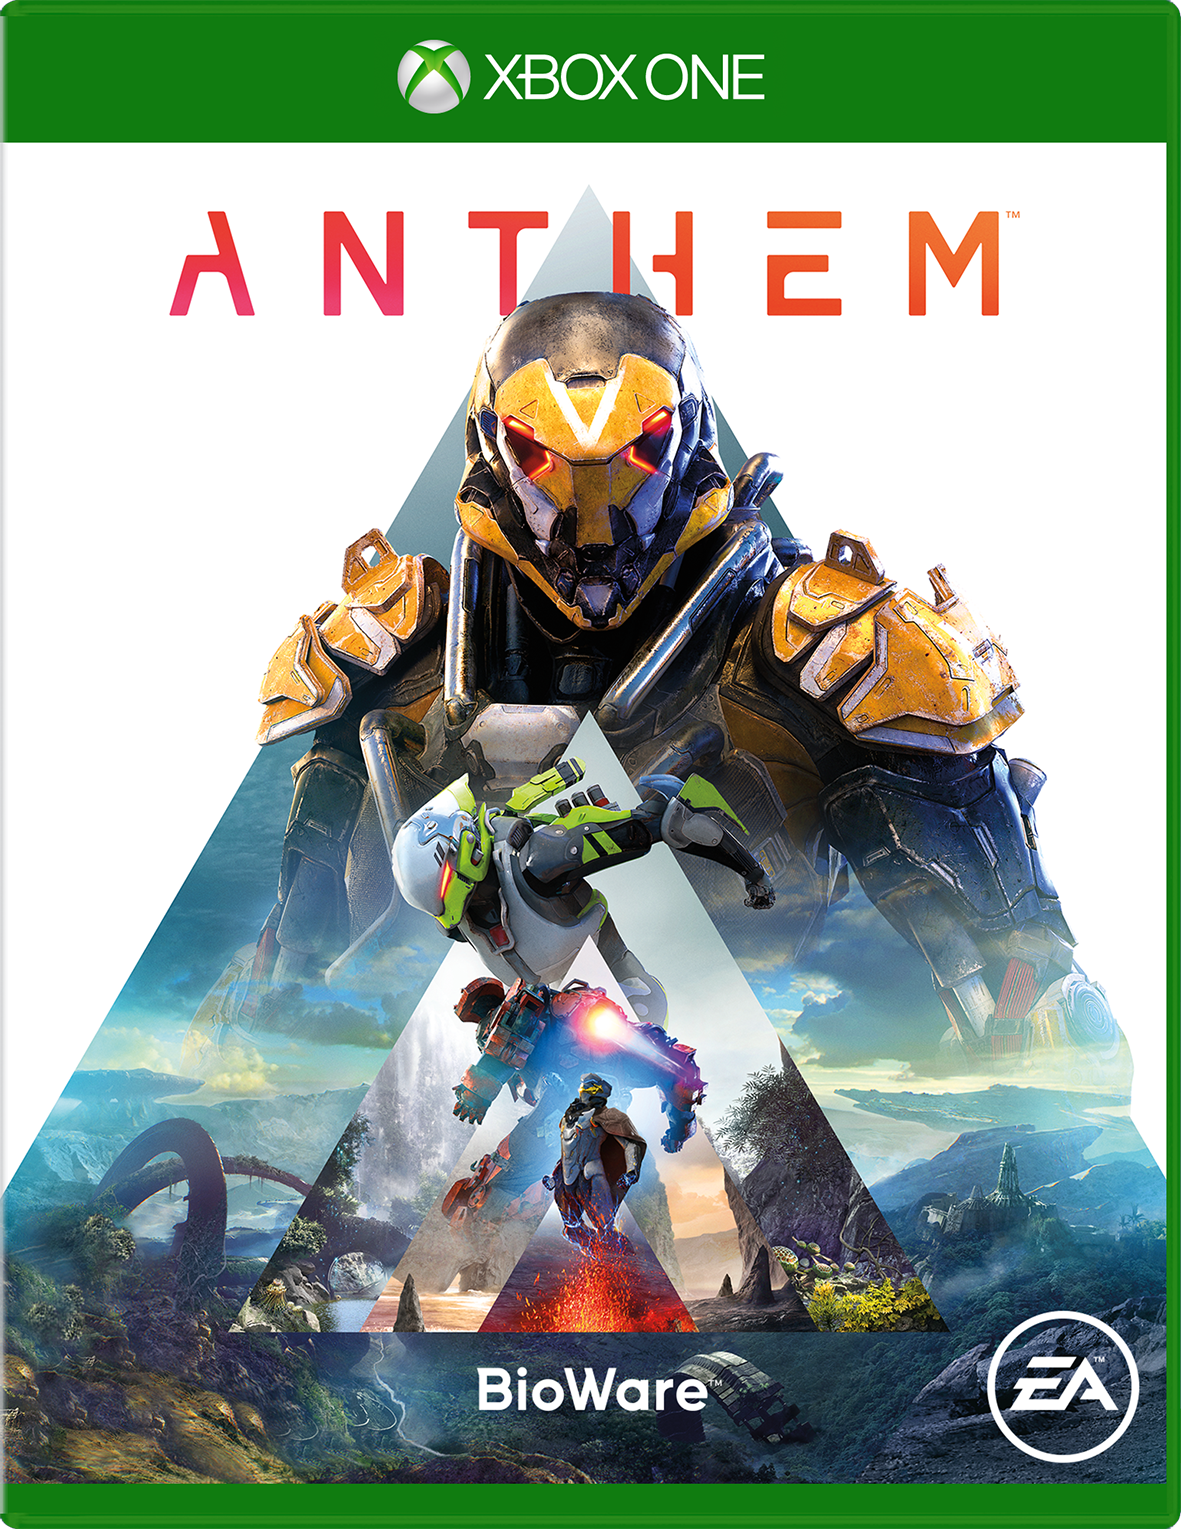 Anthem for Xbox One game box